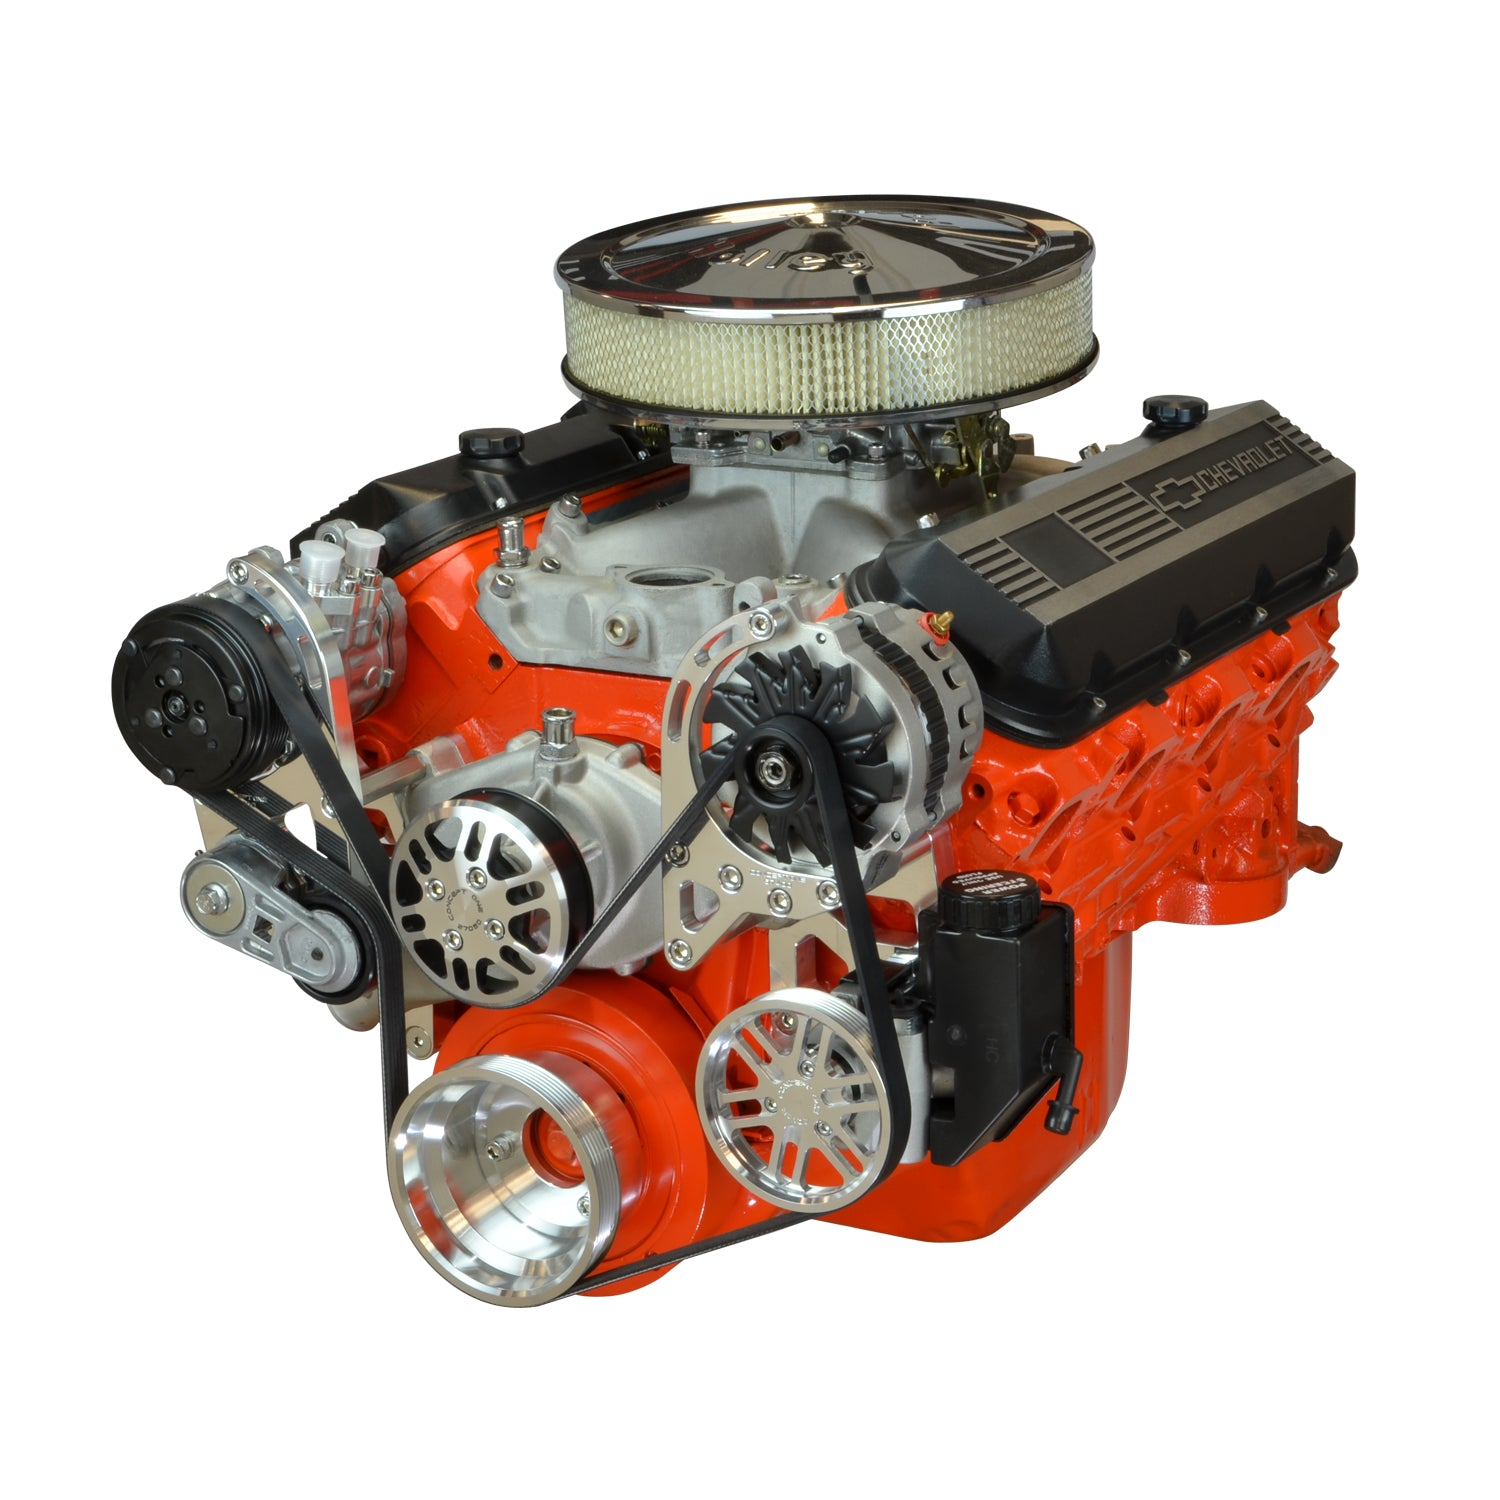 Chevy Big Block Driver Series Kit with Alternator, A/C and Power Steering